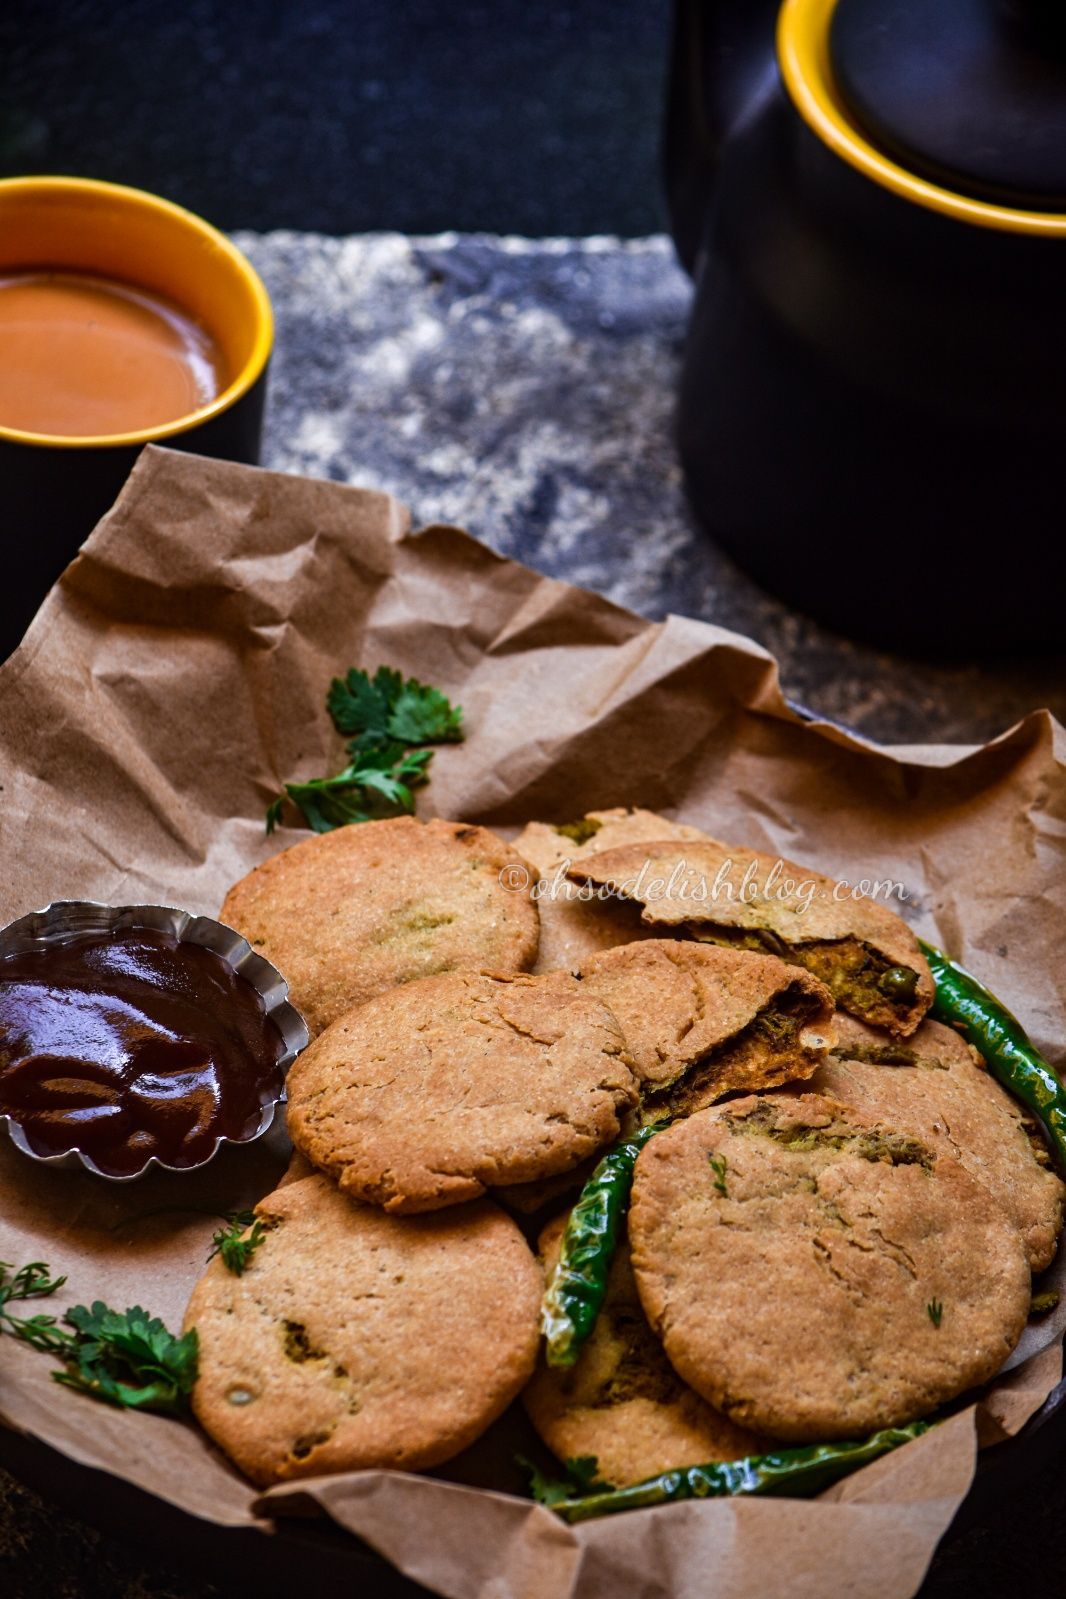 baked wholewheat Matar kachori-ohsodelishblog1.jpg